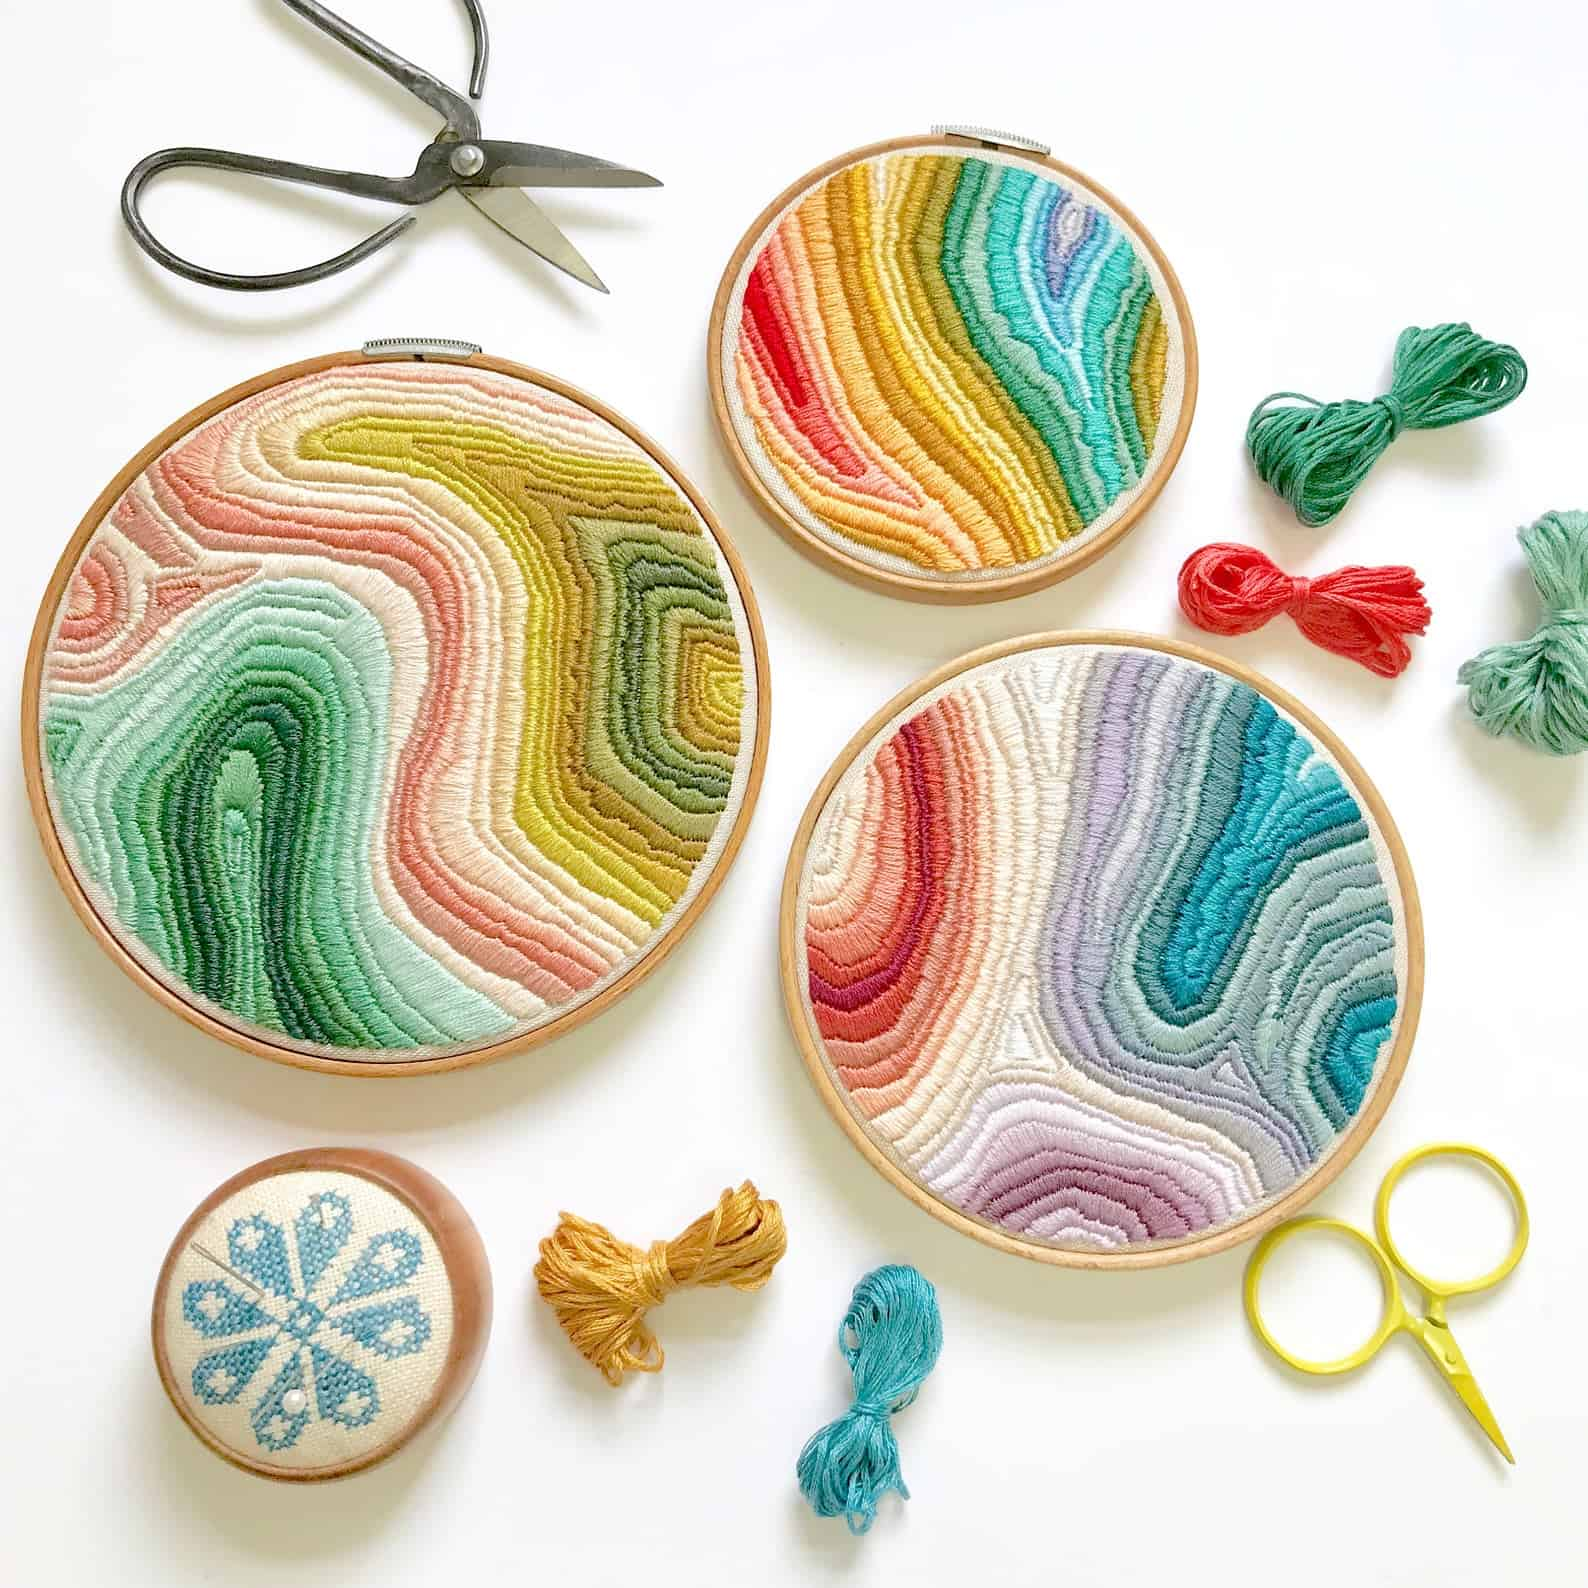 Colorful marble embroidery